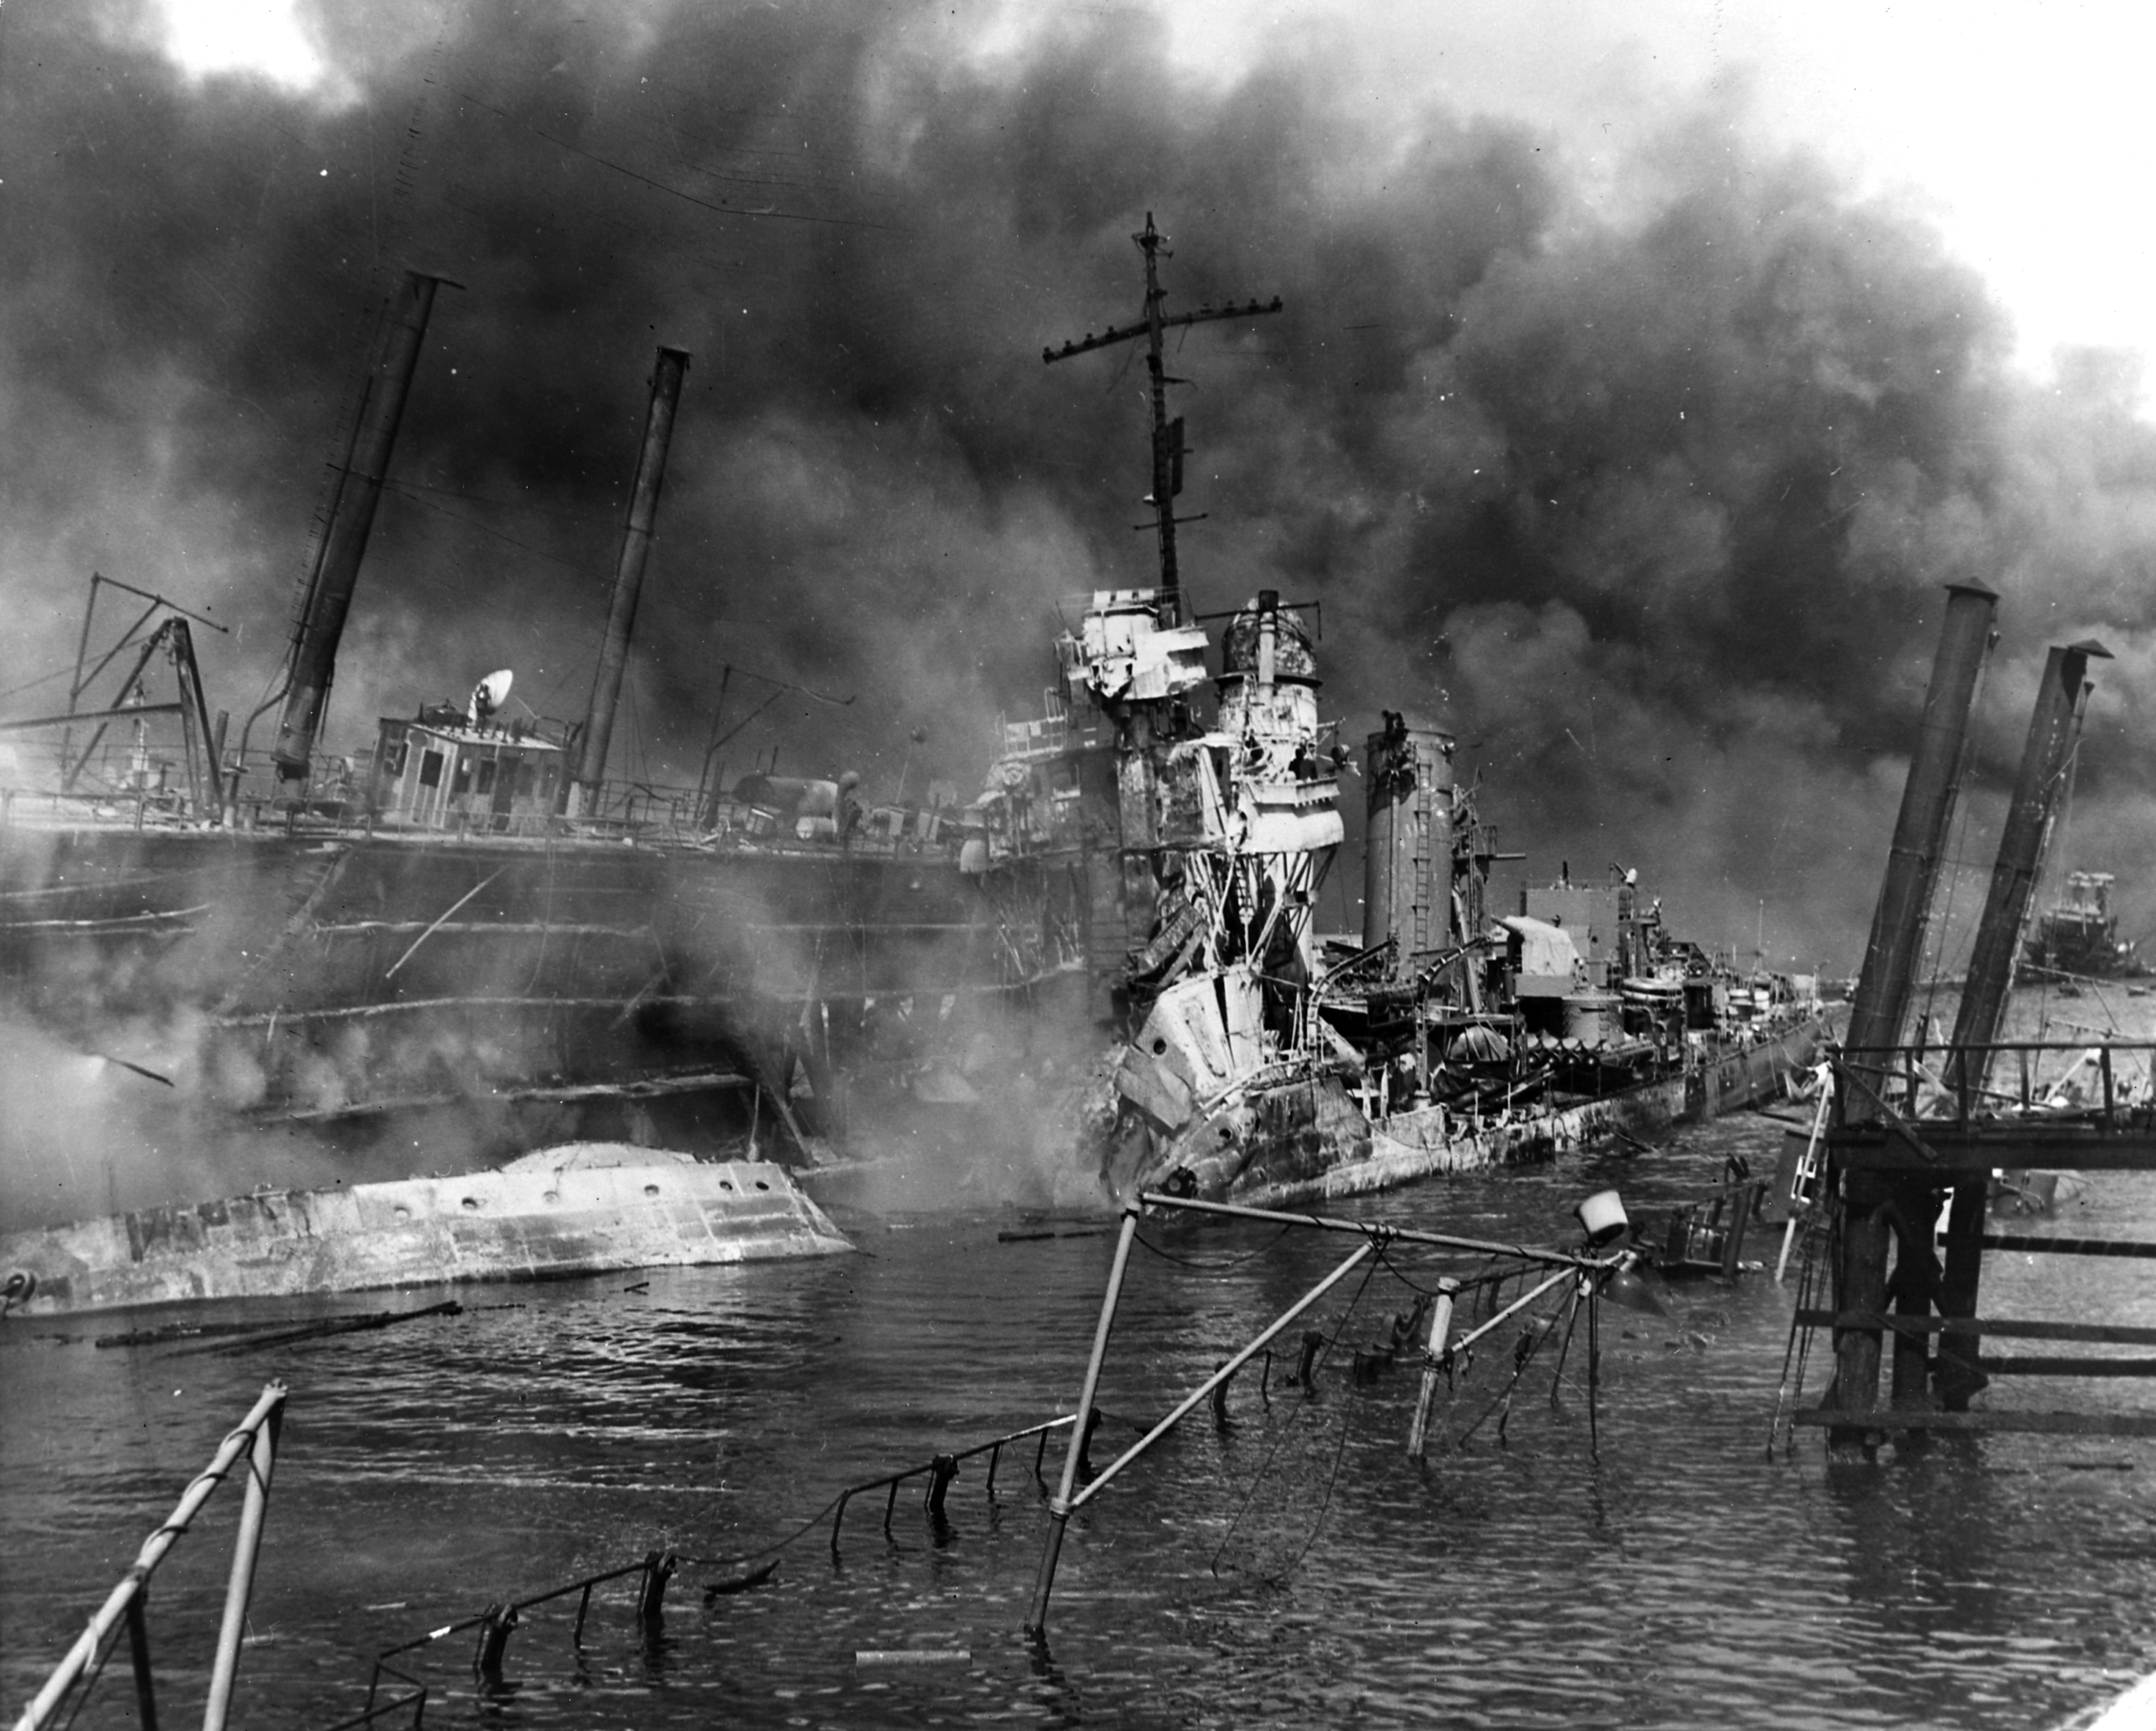 The U.S. Navy destroyer USS Shaw (DD-373) wrecked in floating drydock YFD-2 on December 7, 1941, with fires were nearly out but structure still smoking. Her bow had been blown off by the explosion of her forward magazines, after she was set afire by Japanese dive bombing attacks. In the right distance are the damaged and listing USS California (BB-44) and a dredge. Official U.S. Navy Photograph, National Archives Collection.